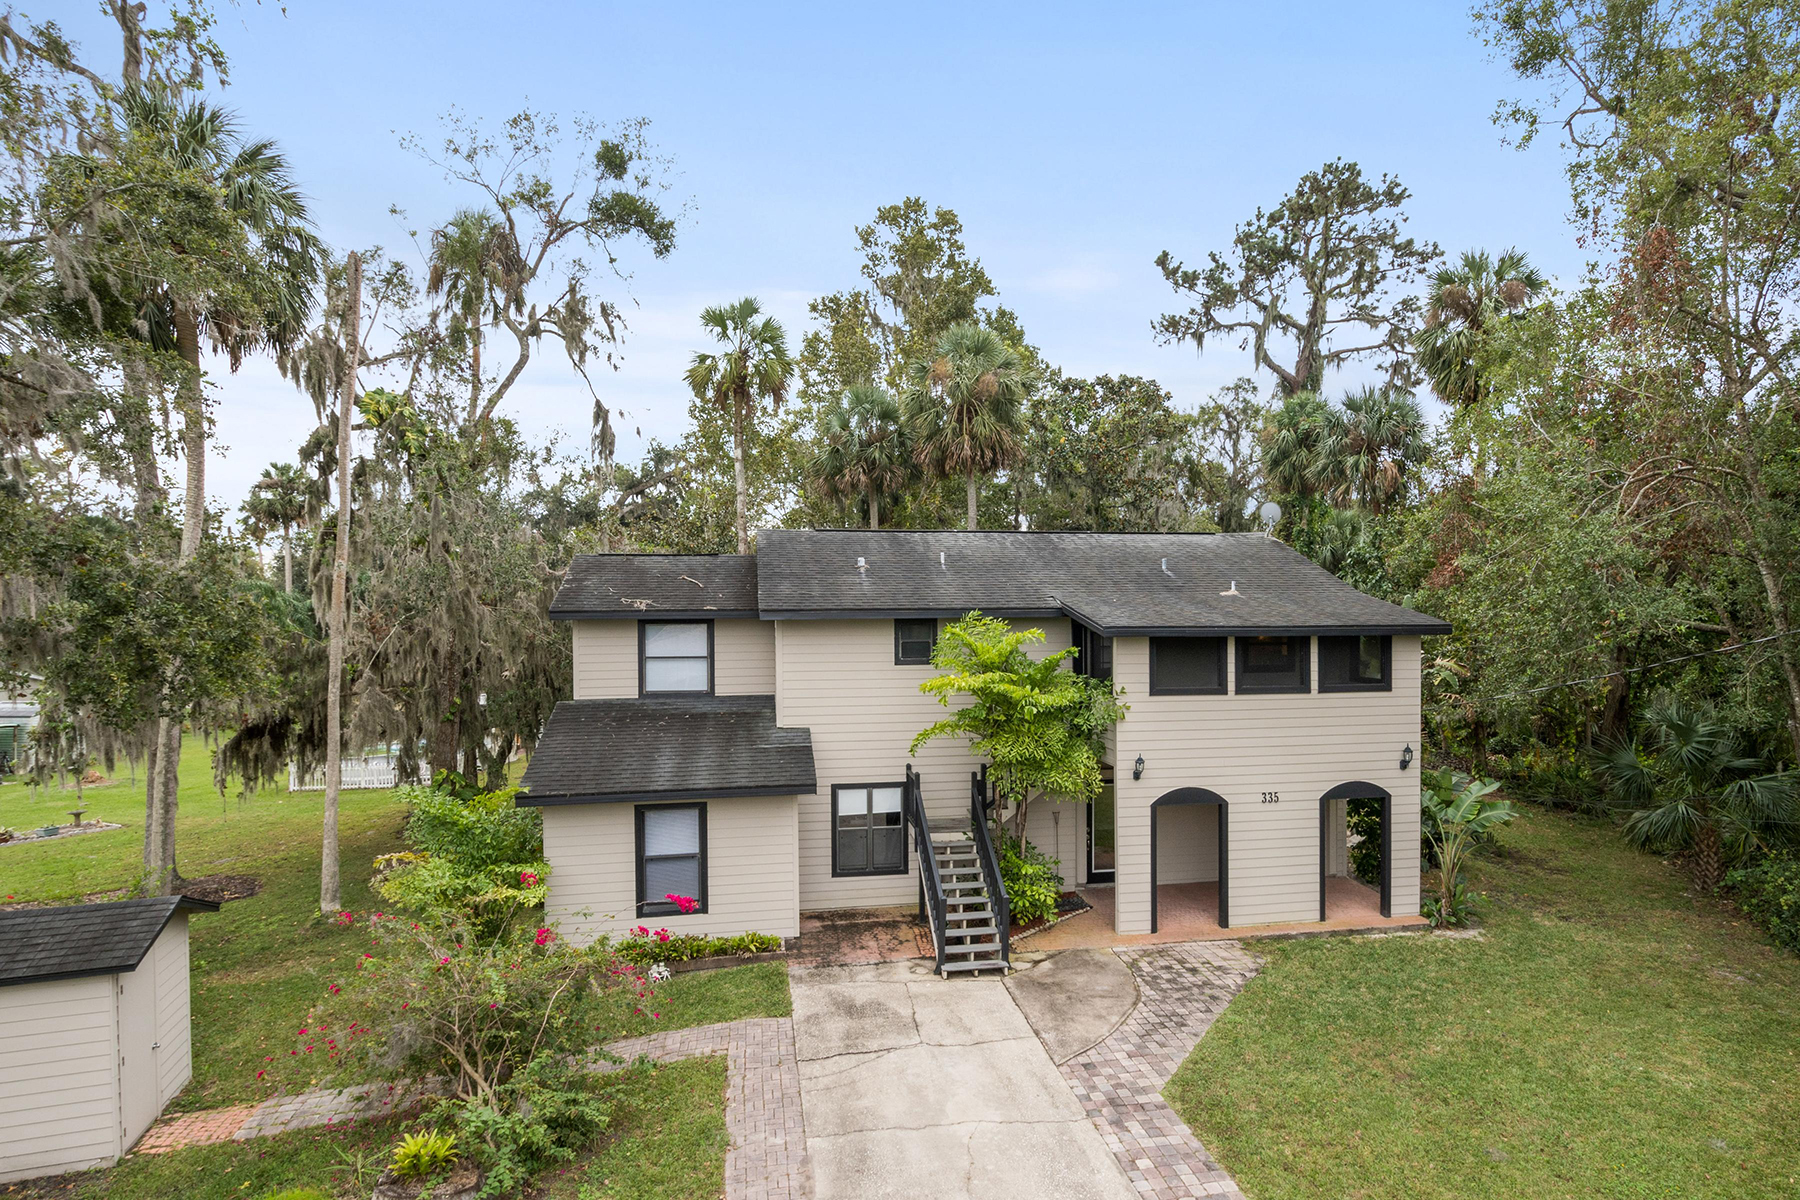 Single Family Home for Sale at ORLANDO - DEBARY 335 Lake Crescent Dr Debary, Florida 32713 United States